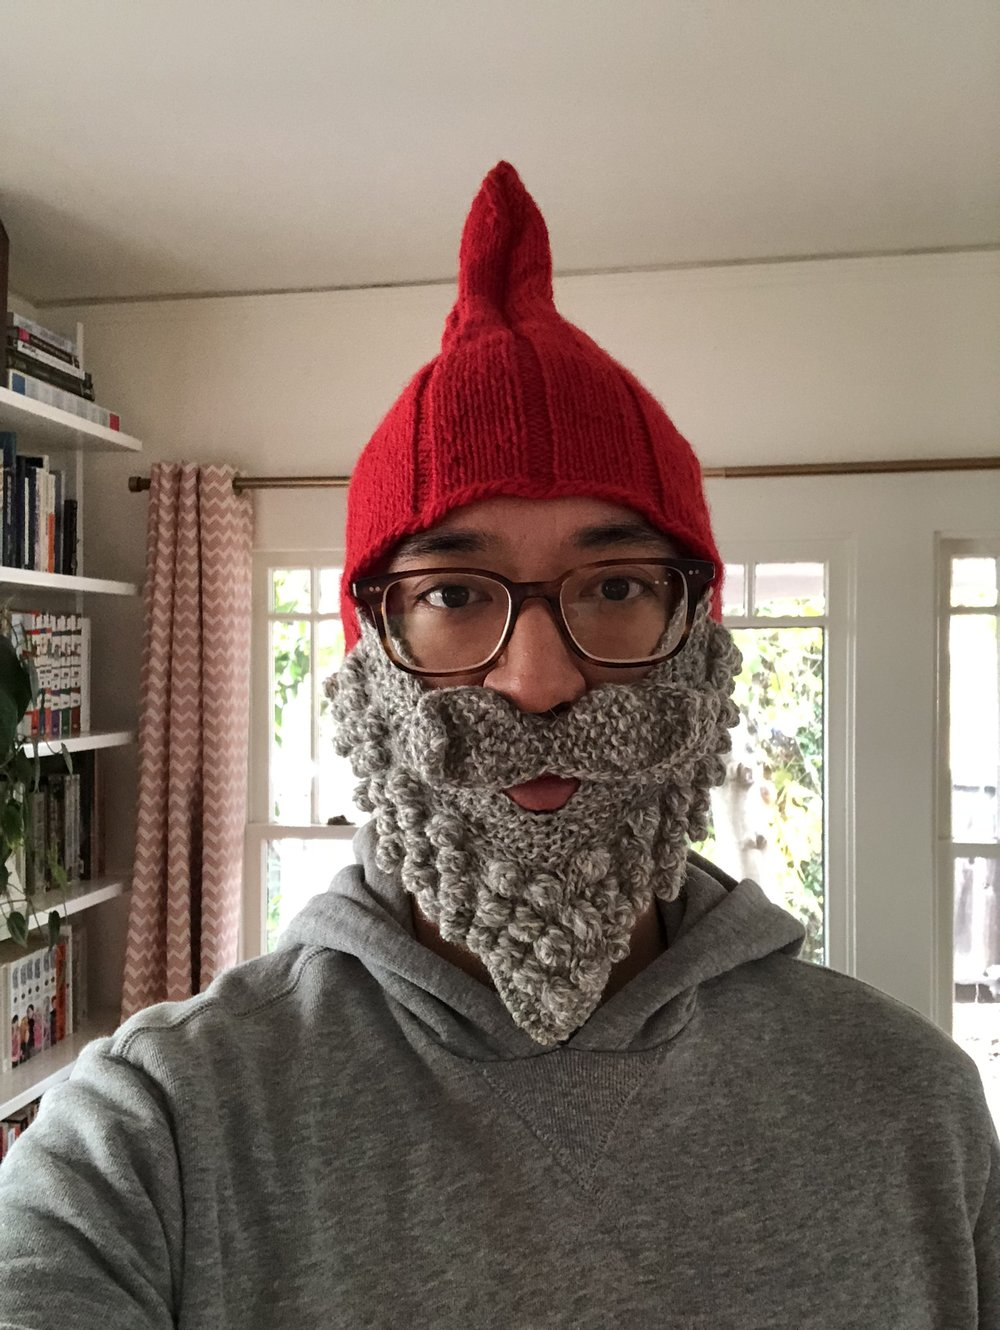 Christmas also means the gnome hat comes out